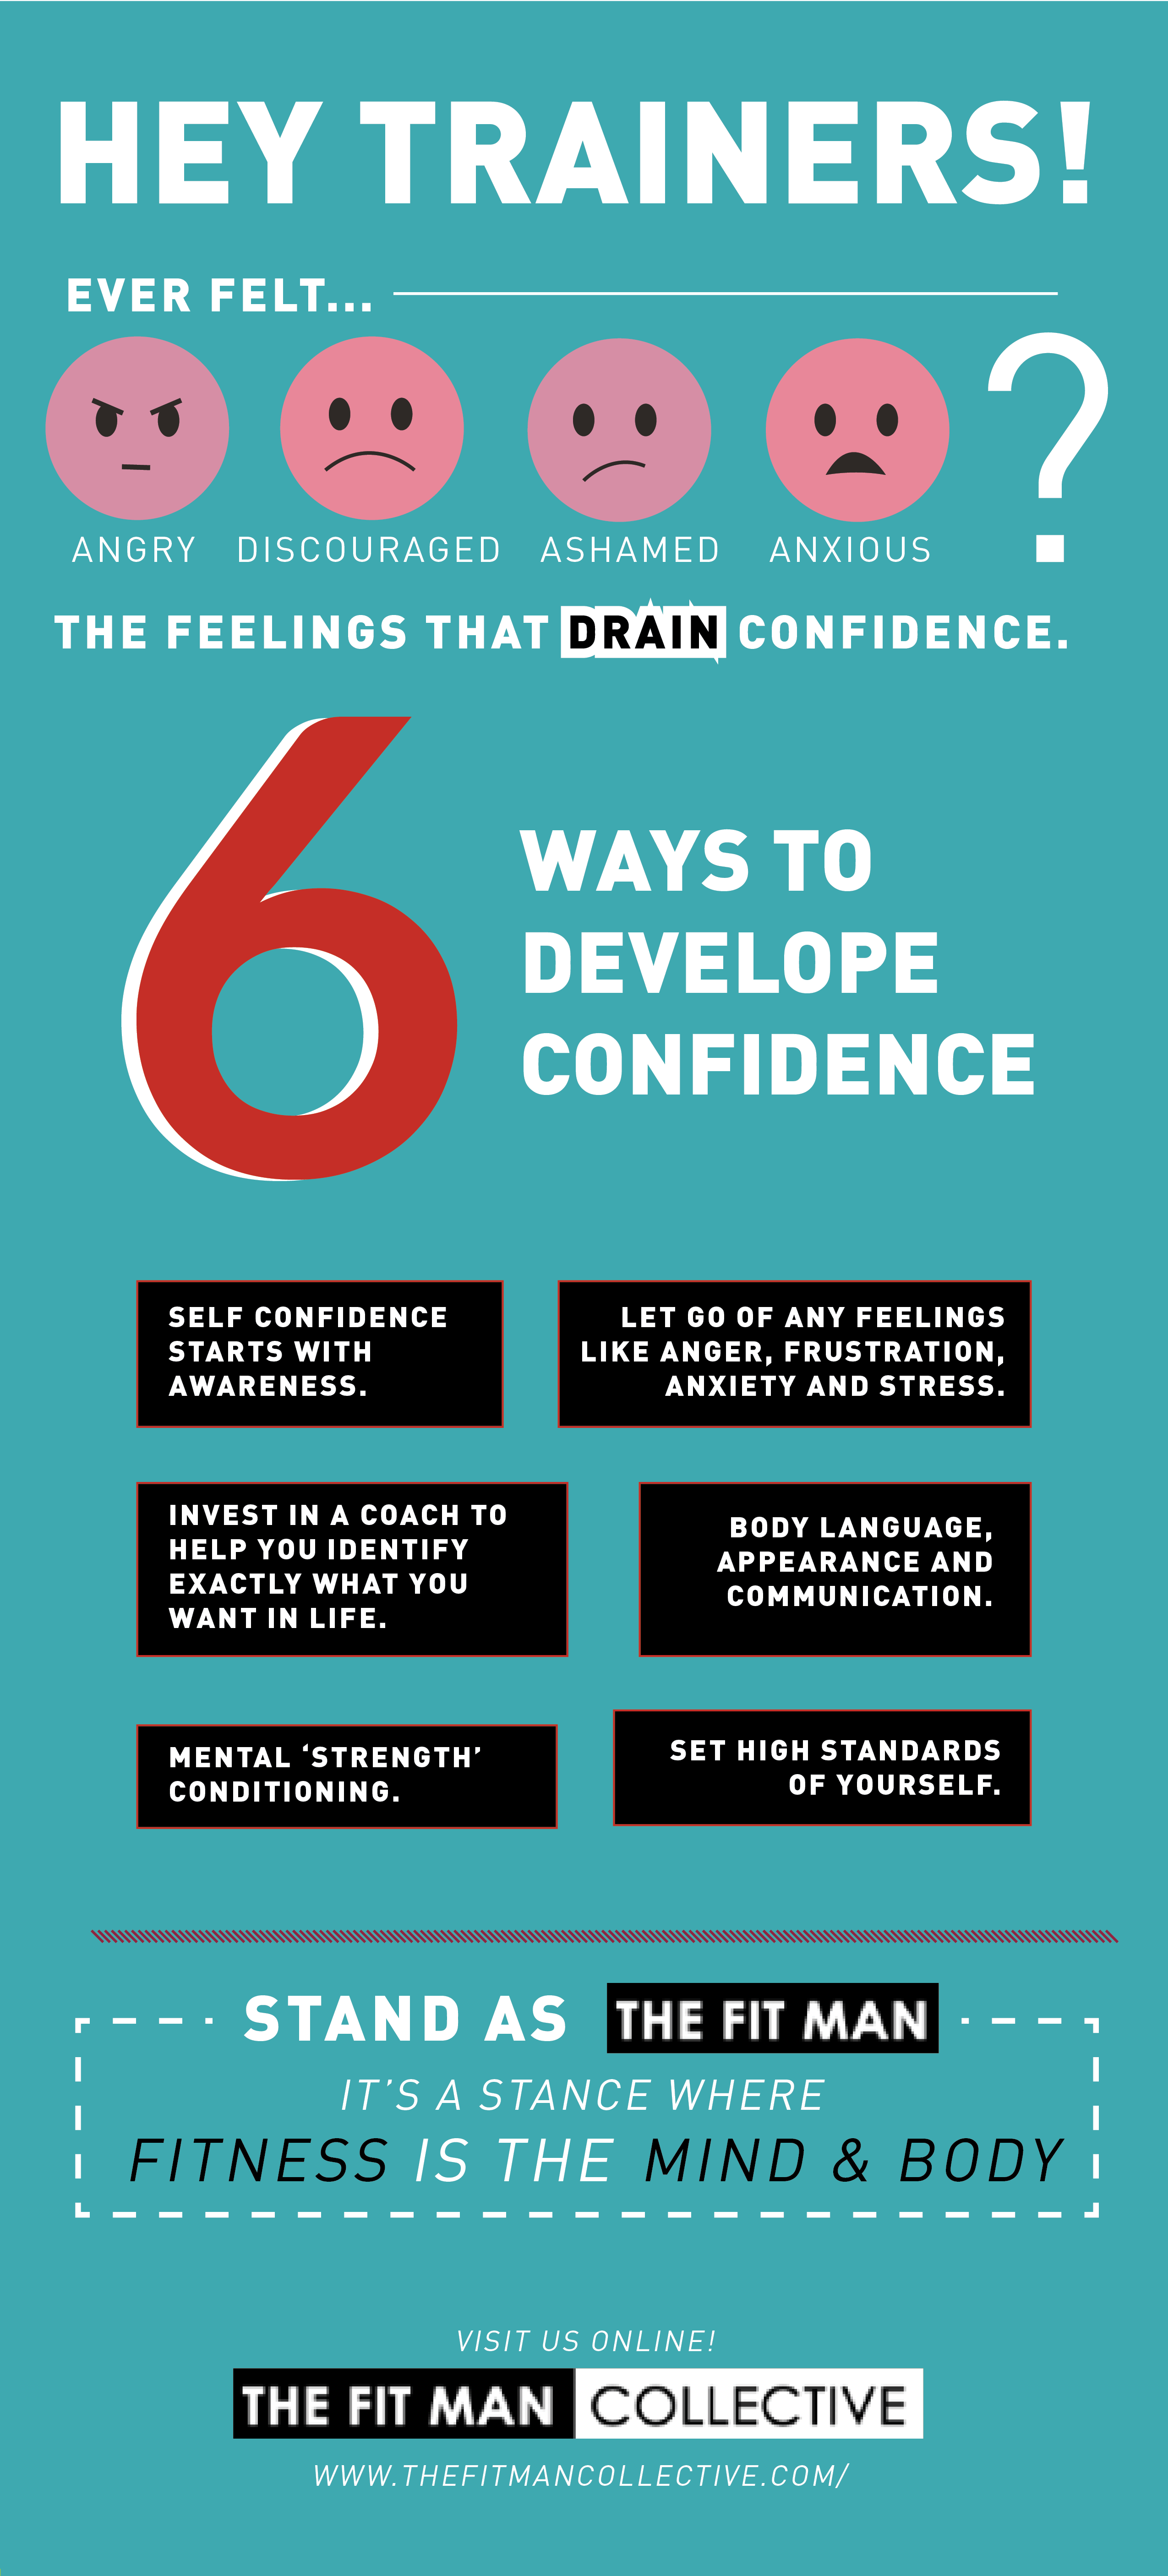 Have you now (or ever) felt angry, frustrated, limited, discouraged, ashamed, disappointed or anxious? The feelings that drain confidence. If so, I can relate.  http://thefitmancollective.com/6-ways-i-developed-confidence-and-turned-my-life-around/